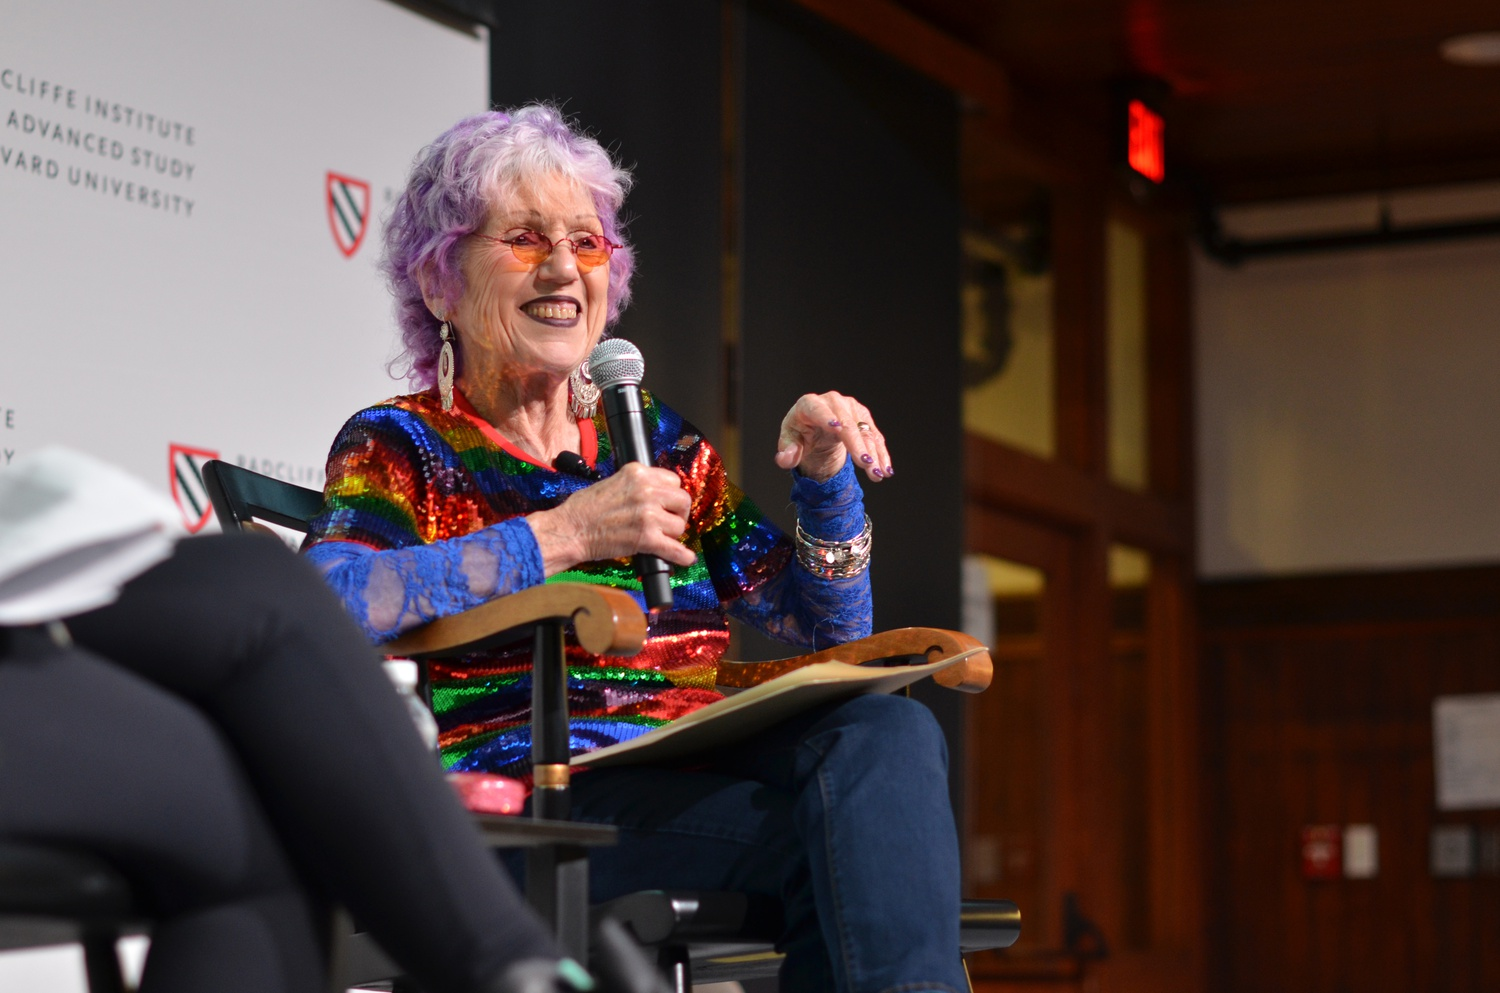 Judy Chicago, a feminist artist and figurehead of the 1970s American feminist art movement, visited the Radcliffe Institute to celebrate the launch of an online portal archiving her work — part of a collaborative archival project across three universities.